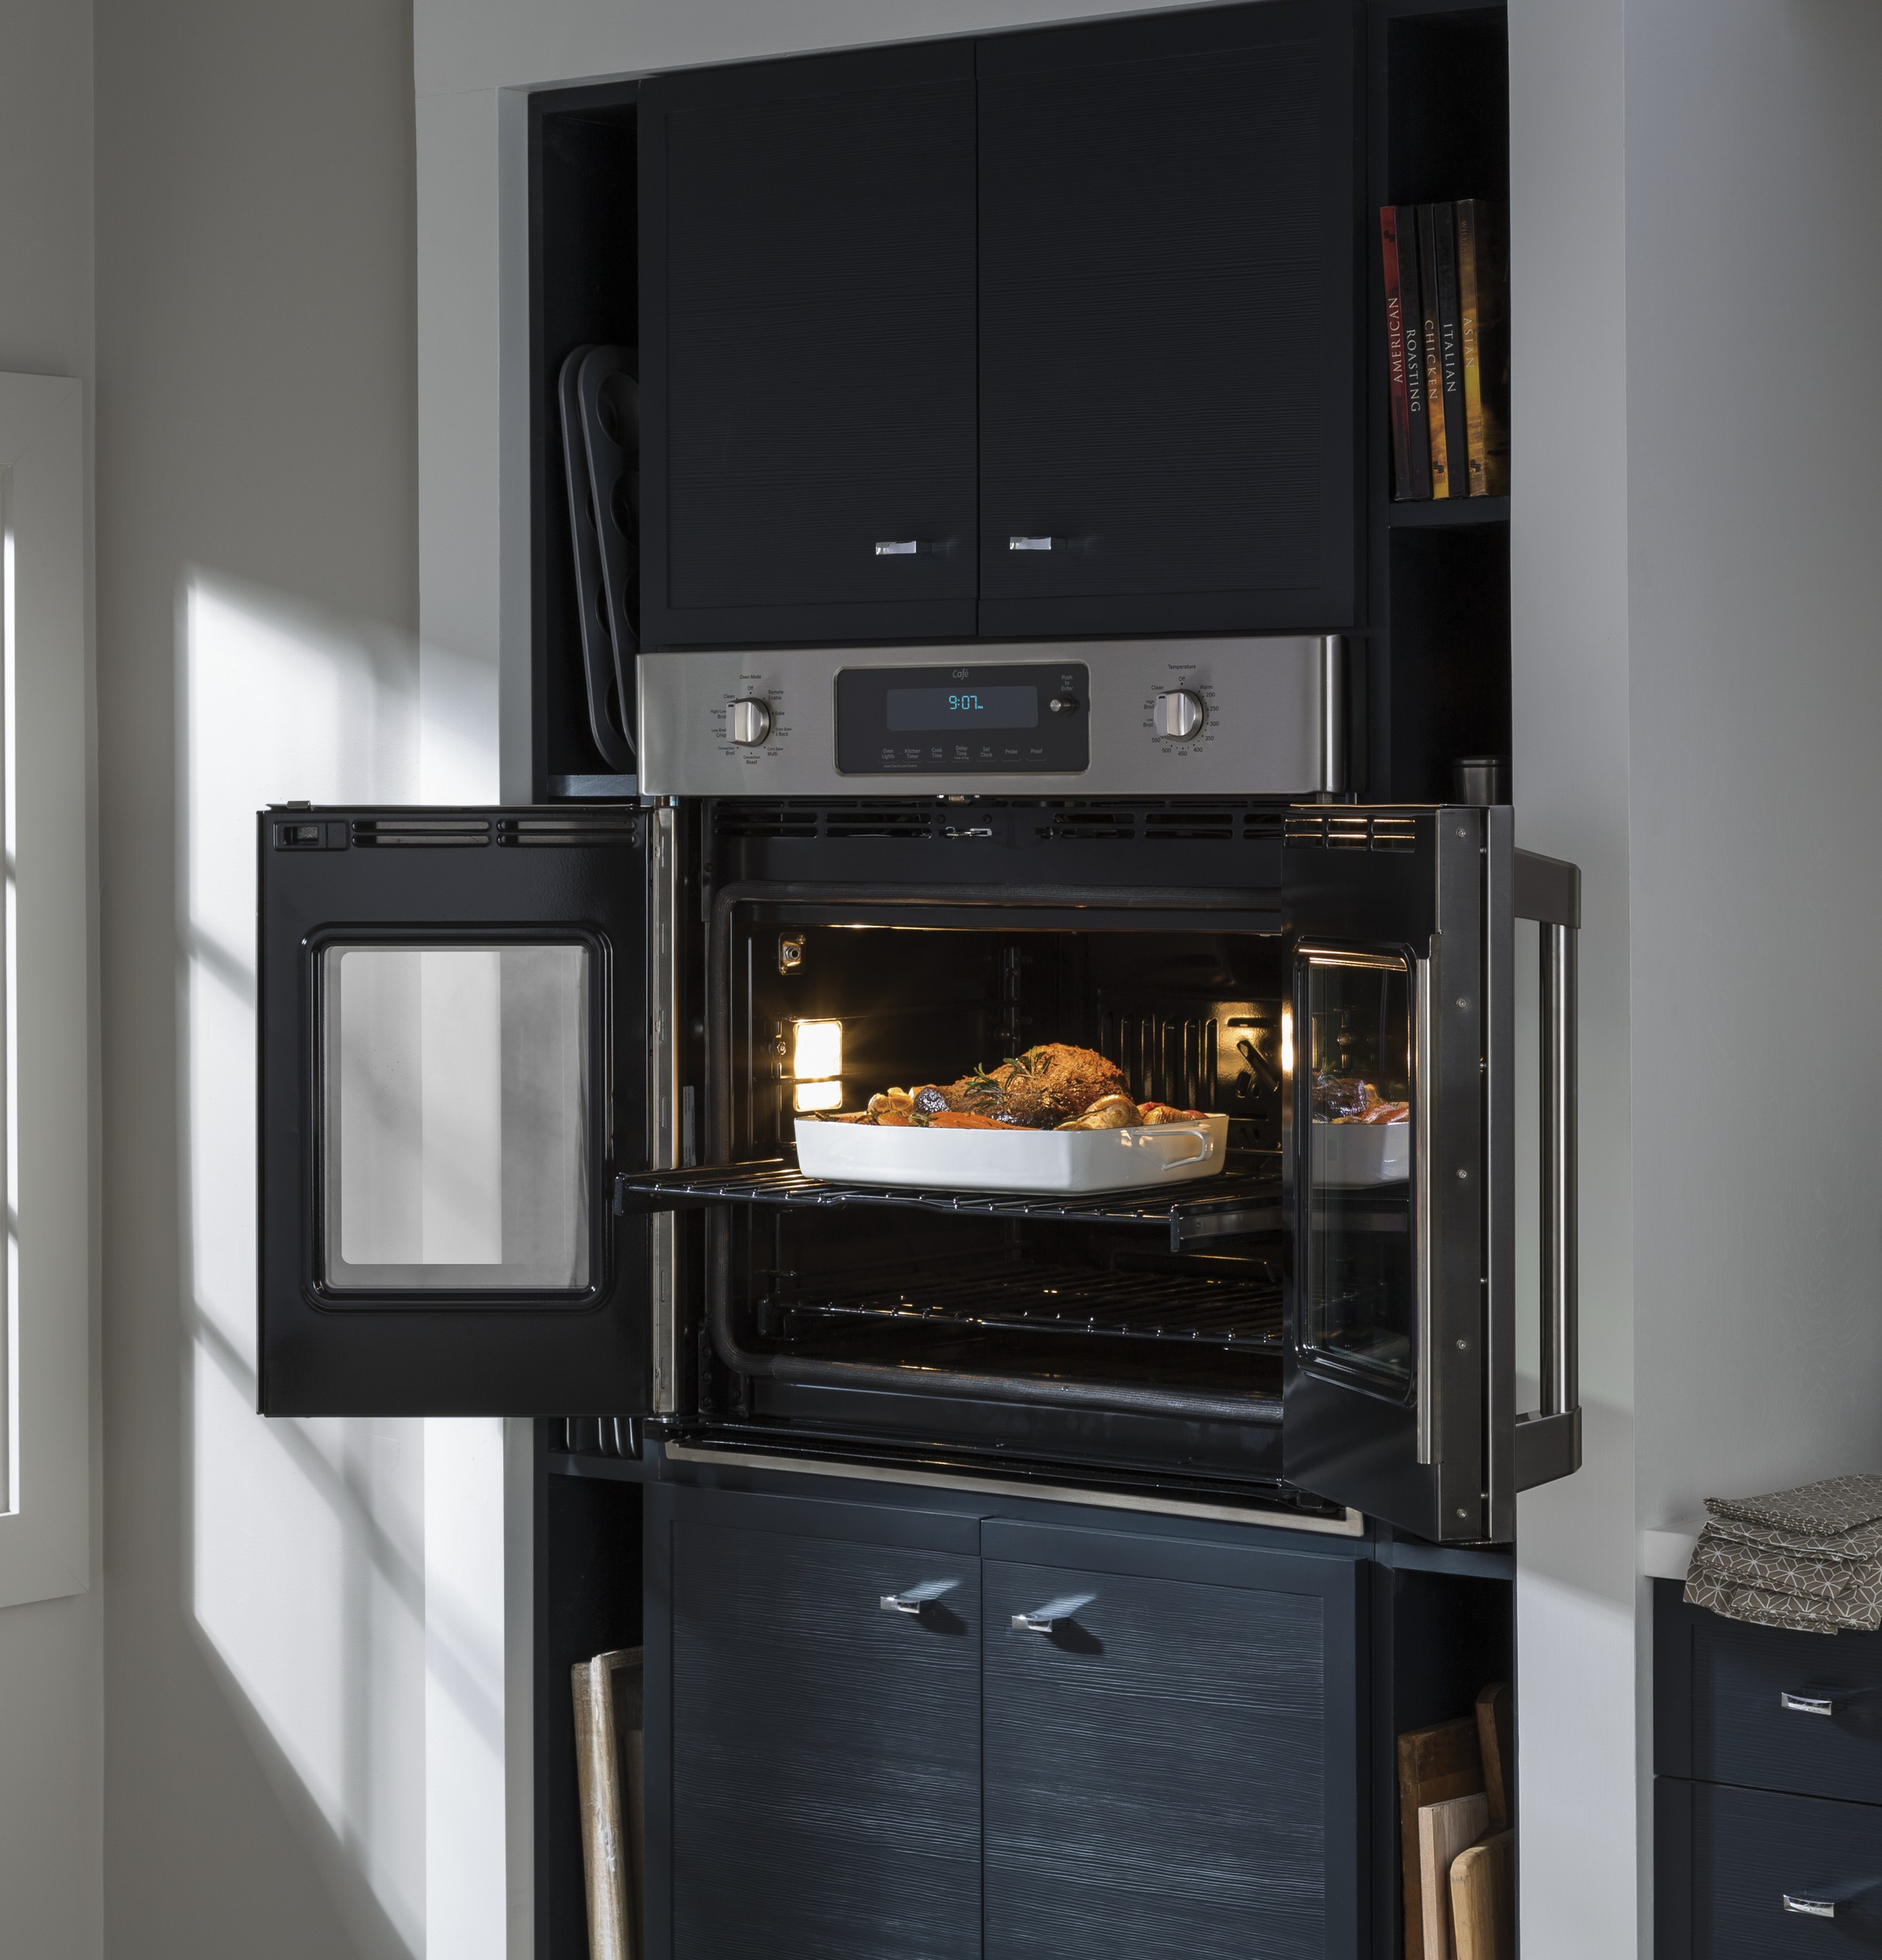 Ge Caf Series 30 Built In French Door Single Convection Wall Oven Williams Furnace Wiring Diagram Electric Product Image